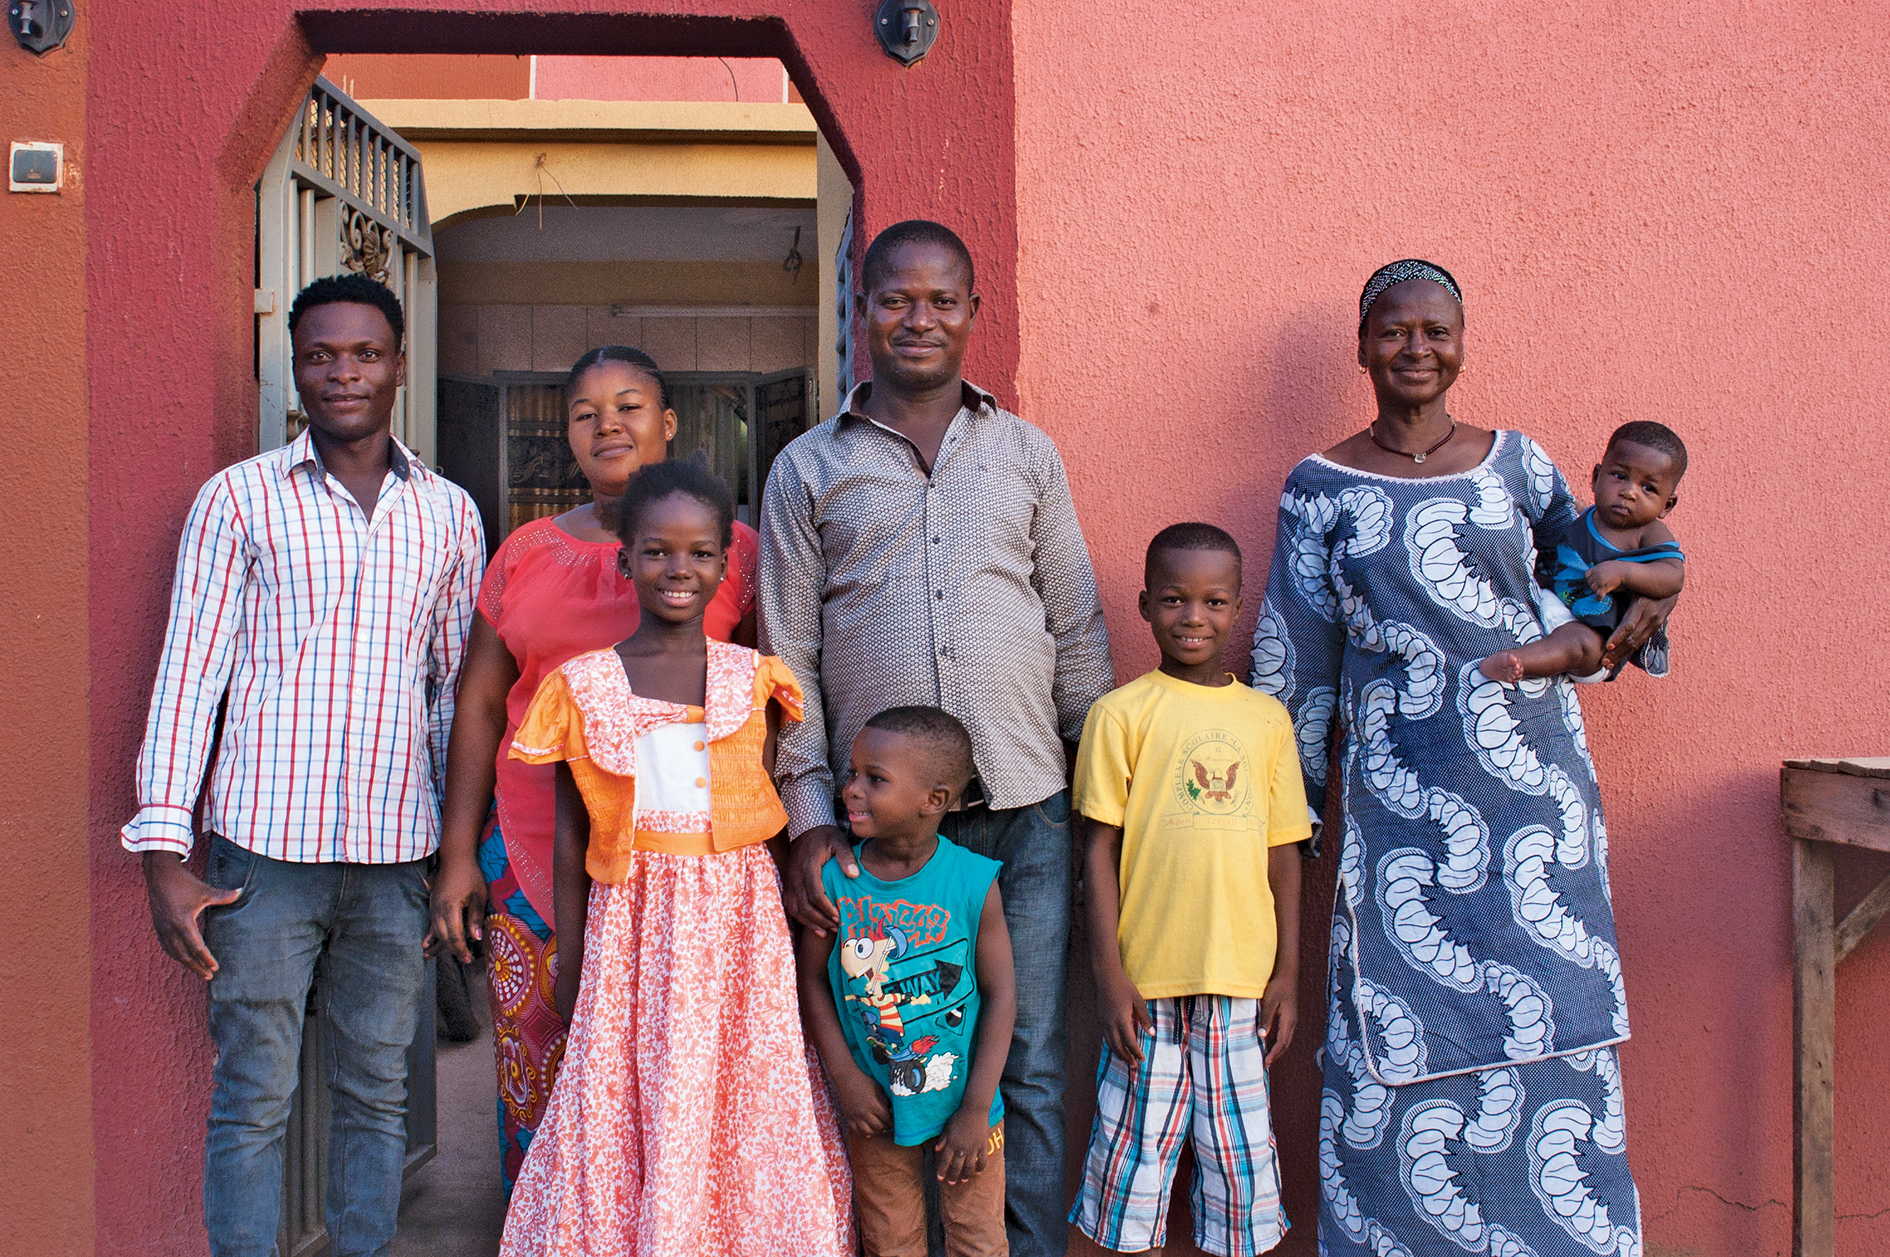 A newly prosperous family: Oumarou (centre) with his wife Bintu and (from left to right) Kadijamila, Abdul Gani Rayan, Muhammad and (in his grandmother's arms) Issa Arif. Oumarou's younger brother Ousmane is on the left.